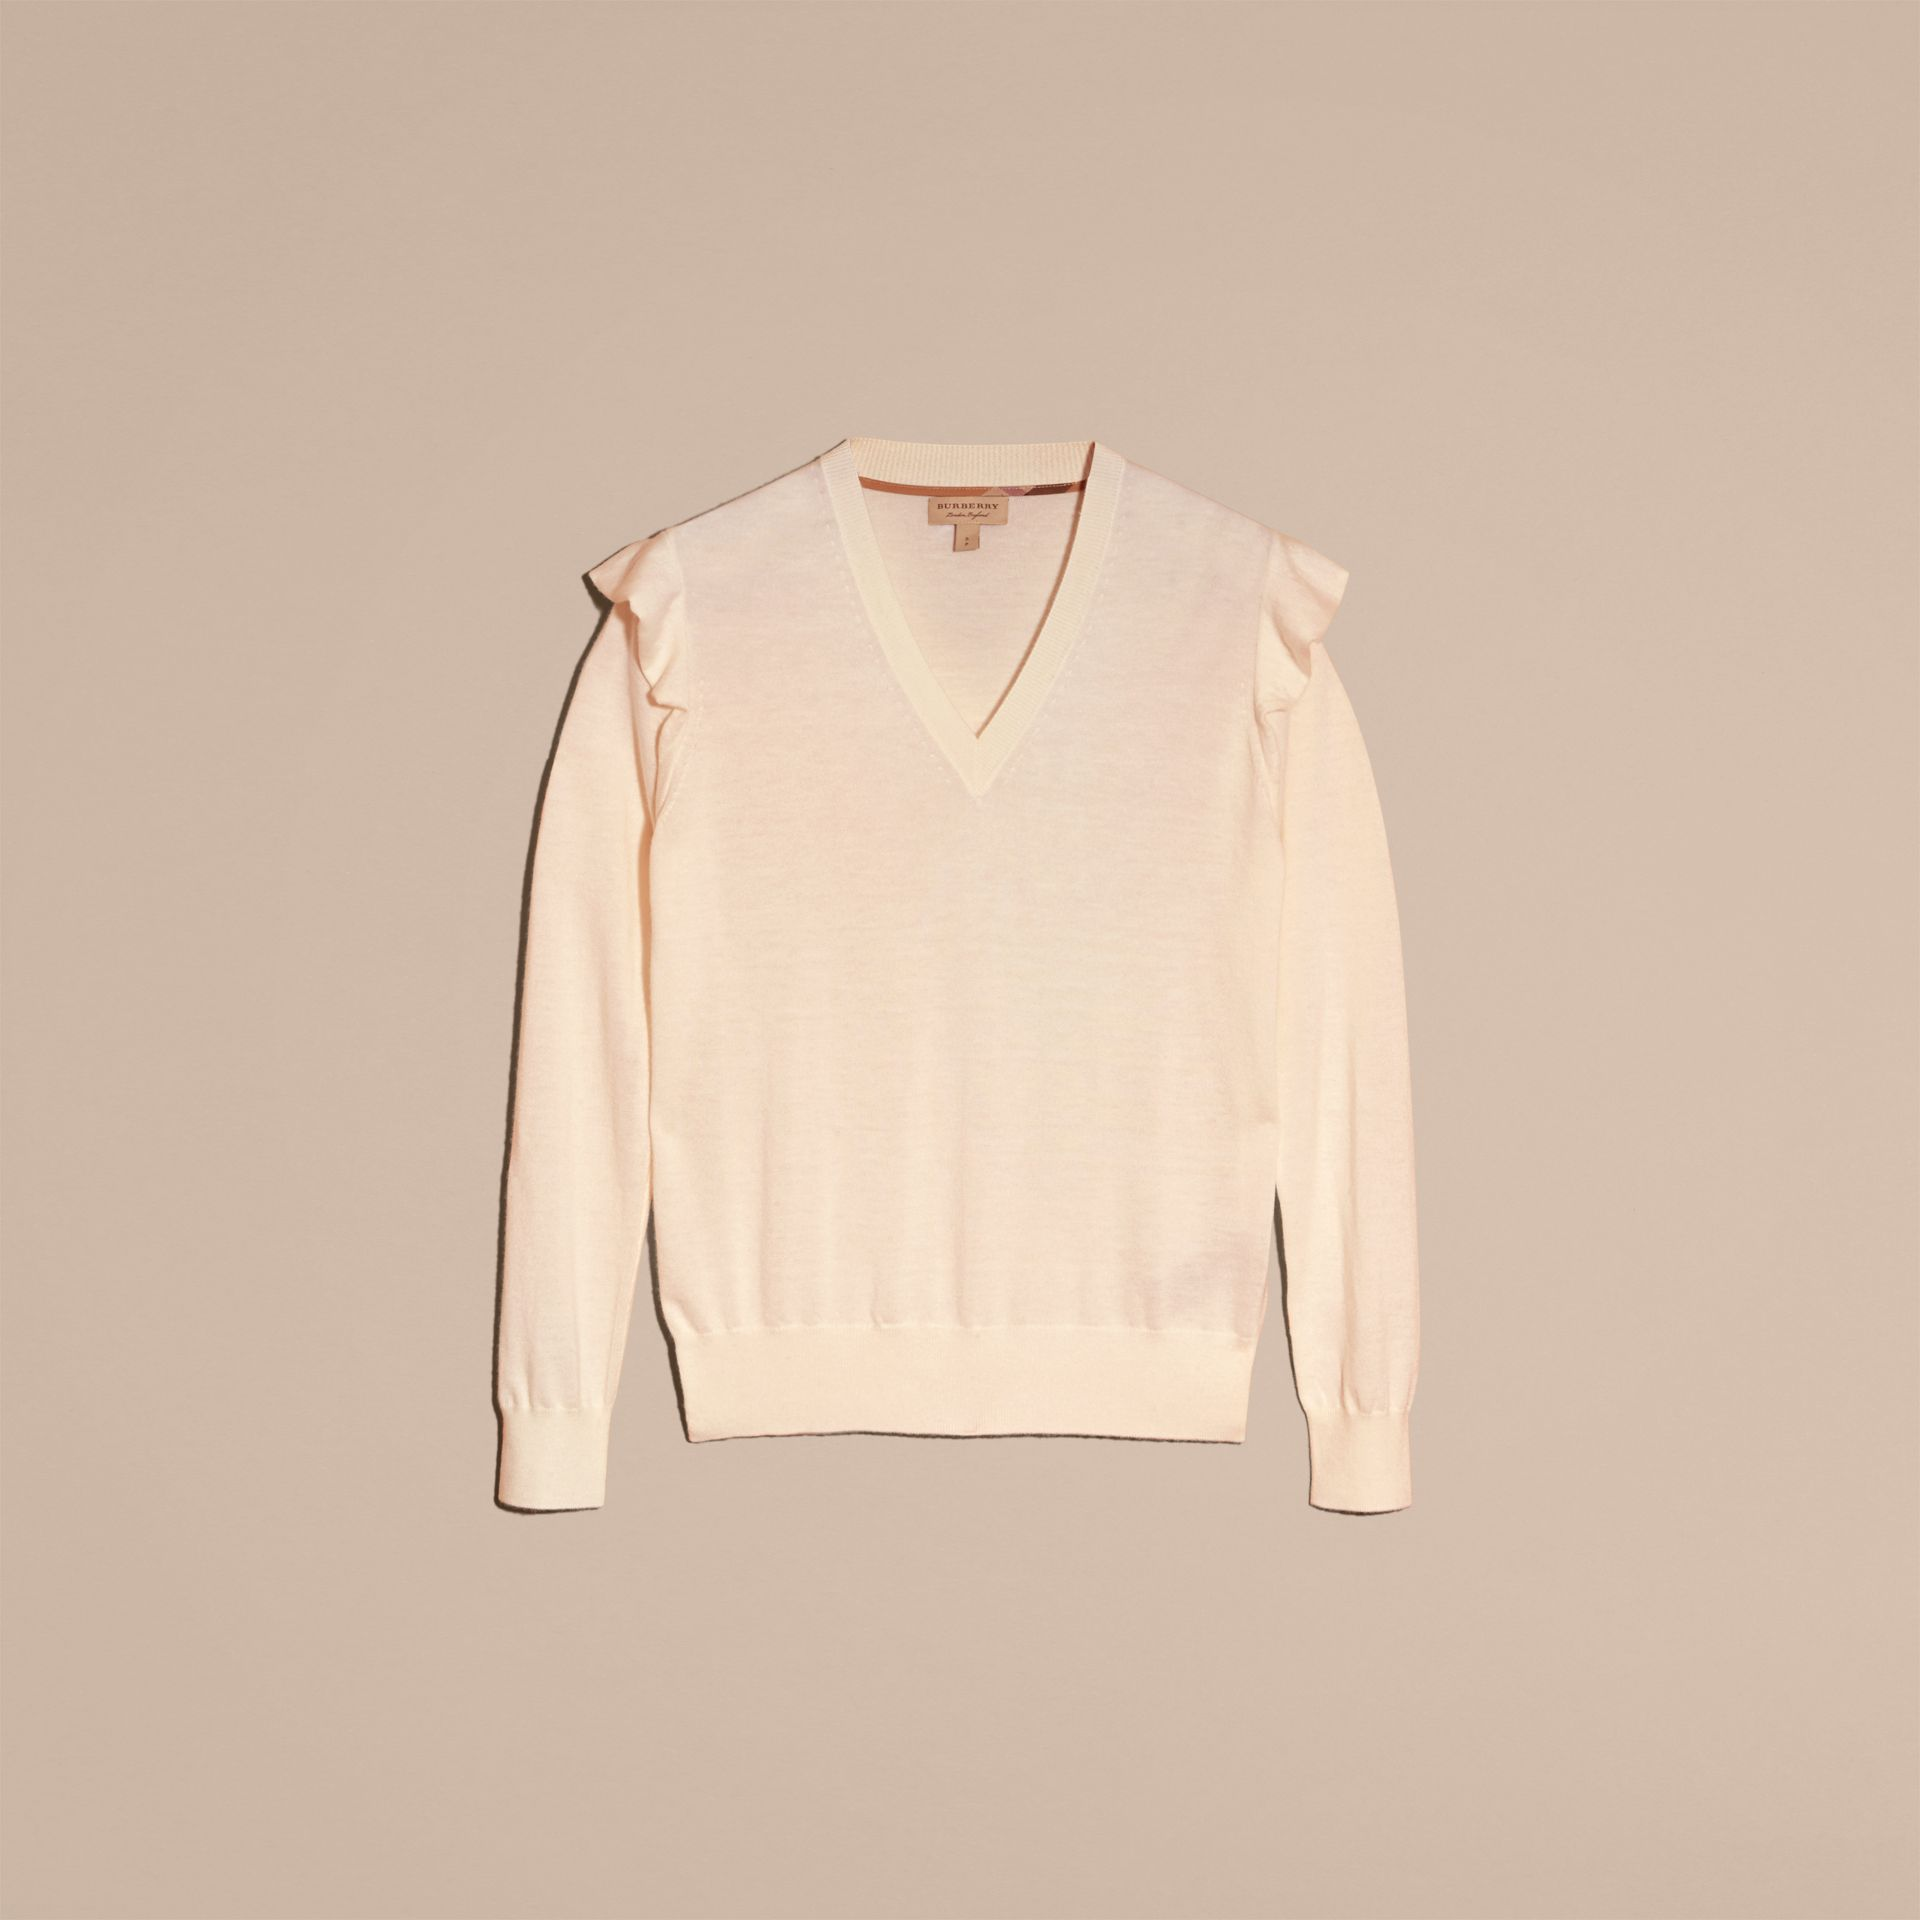 Cashmere Sweater with Frill Sleeves in Natural White - Women | Burberry - gallery image 4